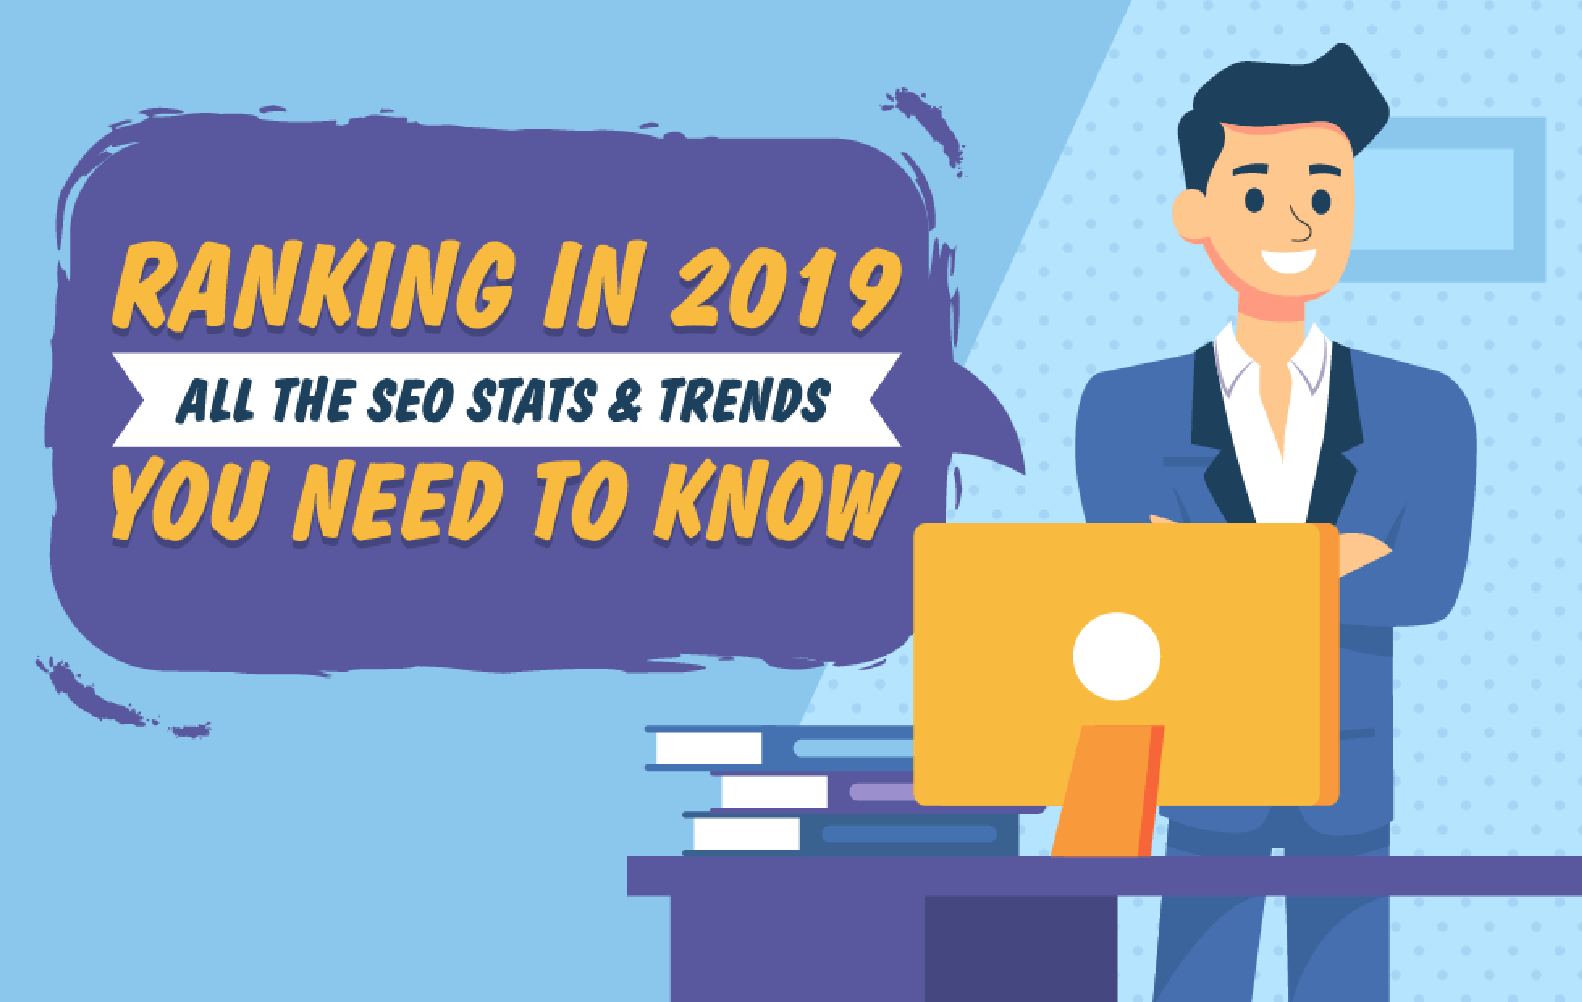 60+ SEO Statistics to Help You Rank #1 in 2019 - How Long Does It Take to Rank Well on Google?